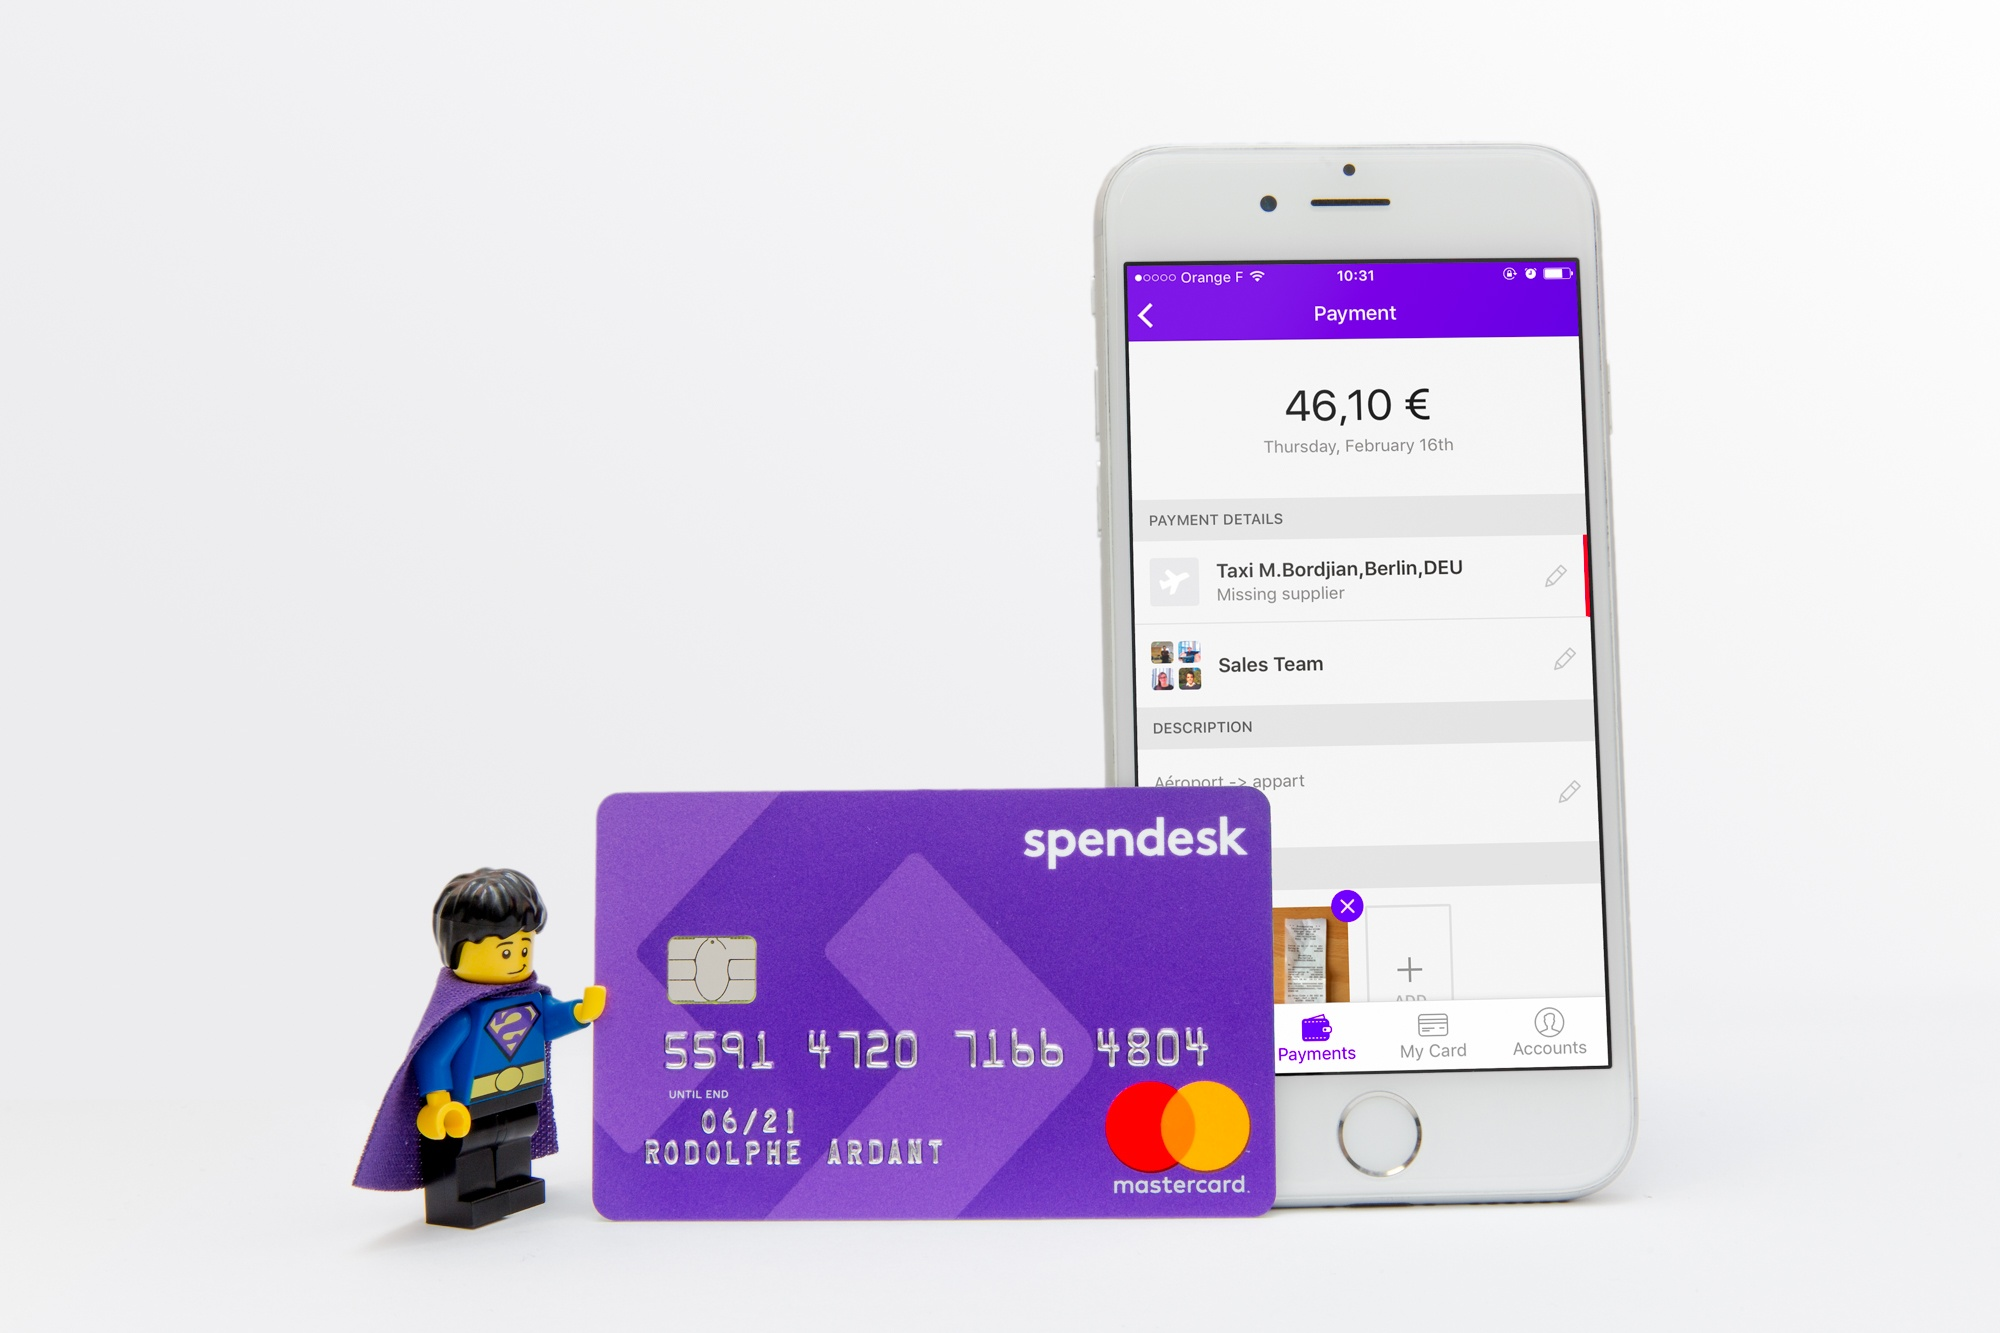 spendesk-mobile-card